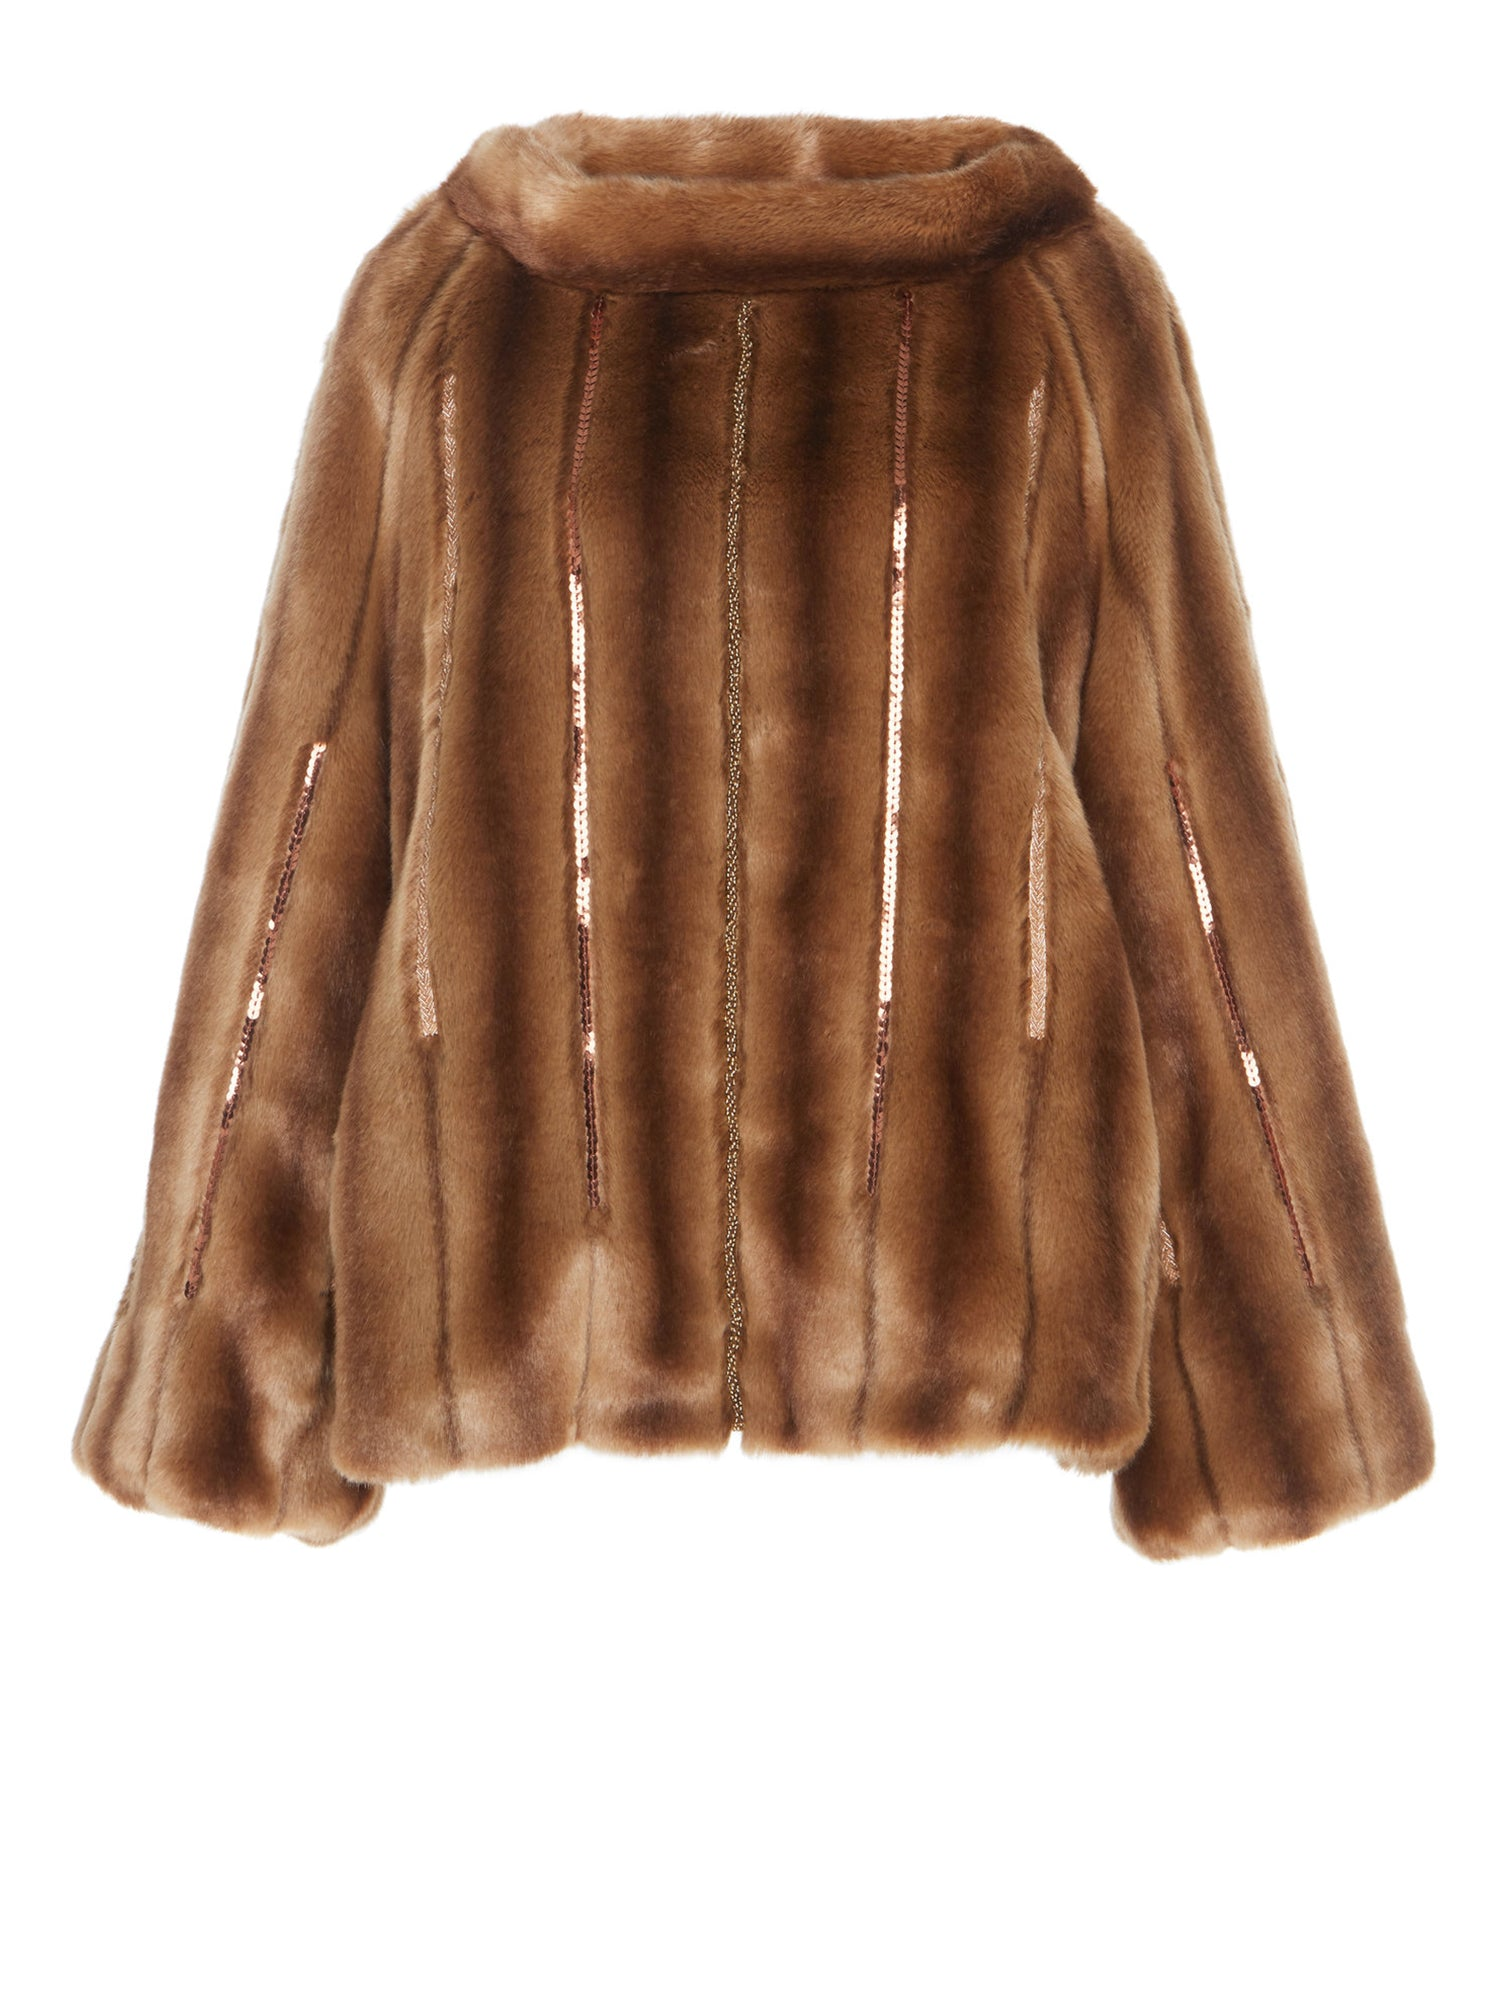 A Packshot Of Marei1998's Achillea Embellished Faux Fur Pullover In Brown Hue. Made From Soft Faux Fur, It Features Flared Sleeves And Wide Neckline.